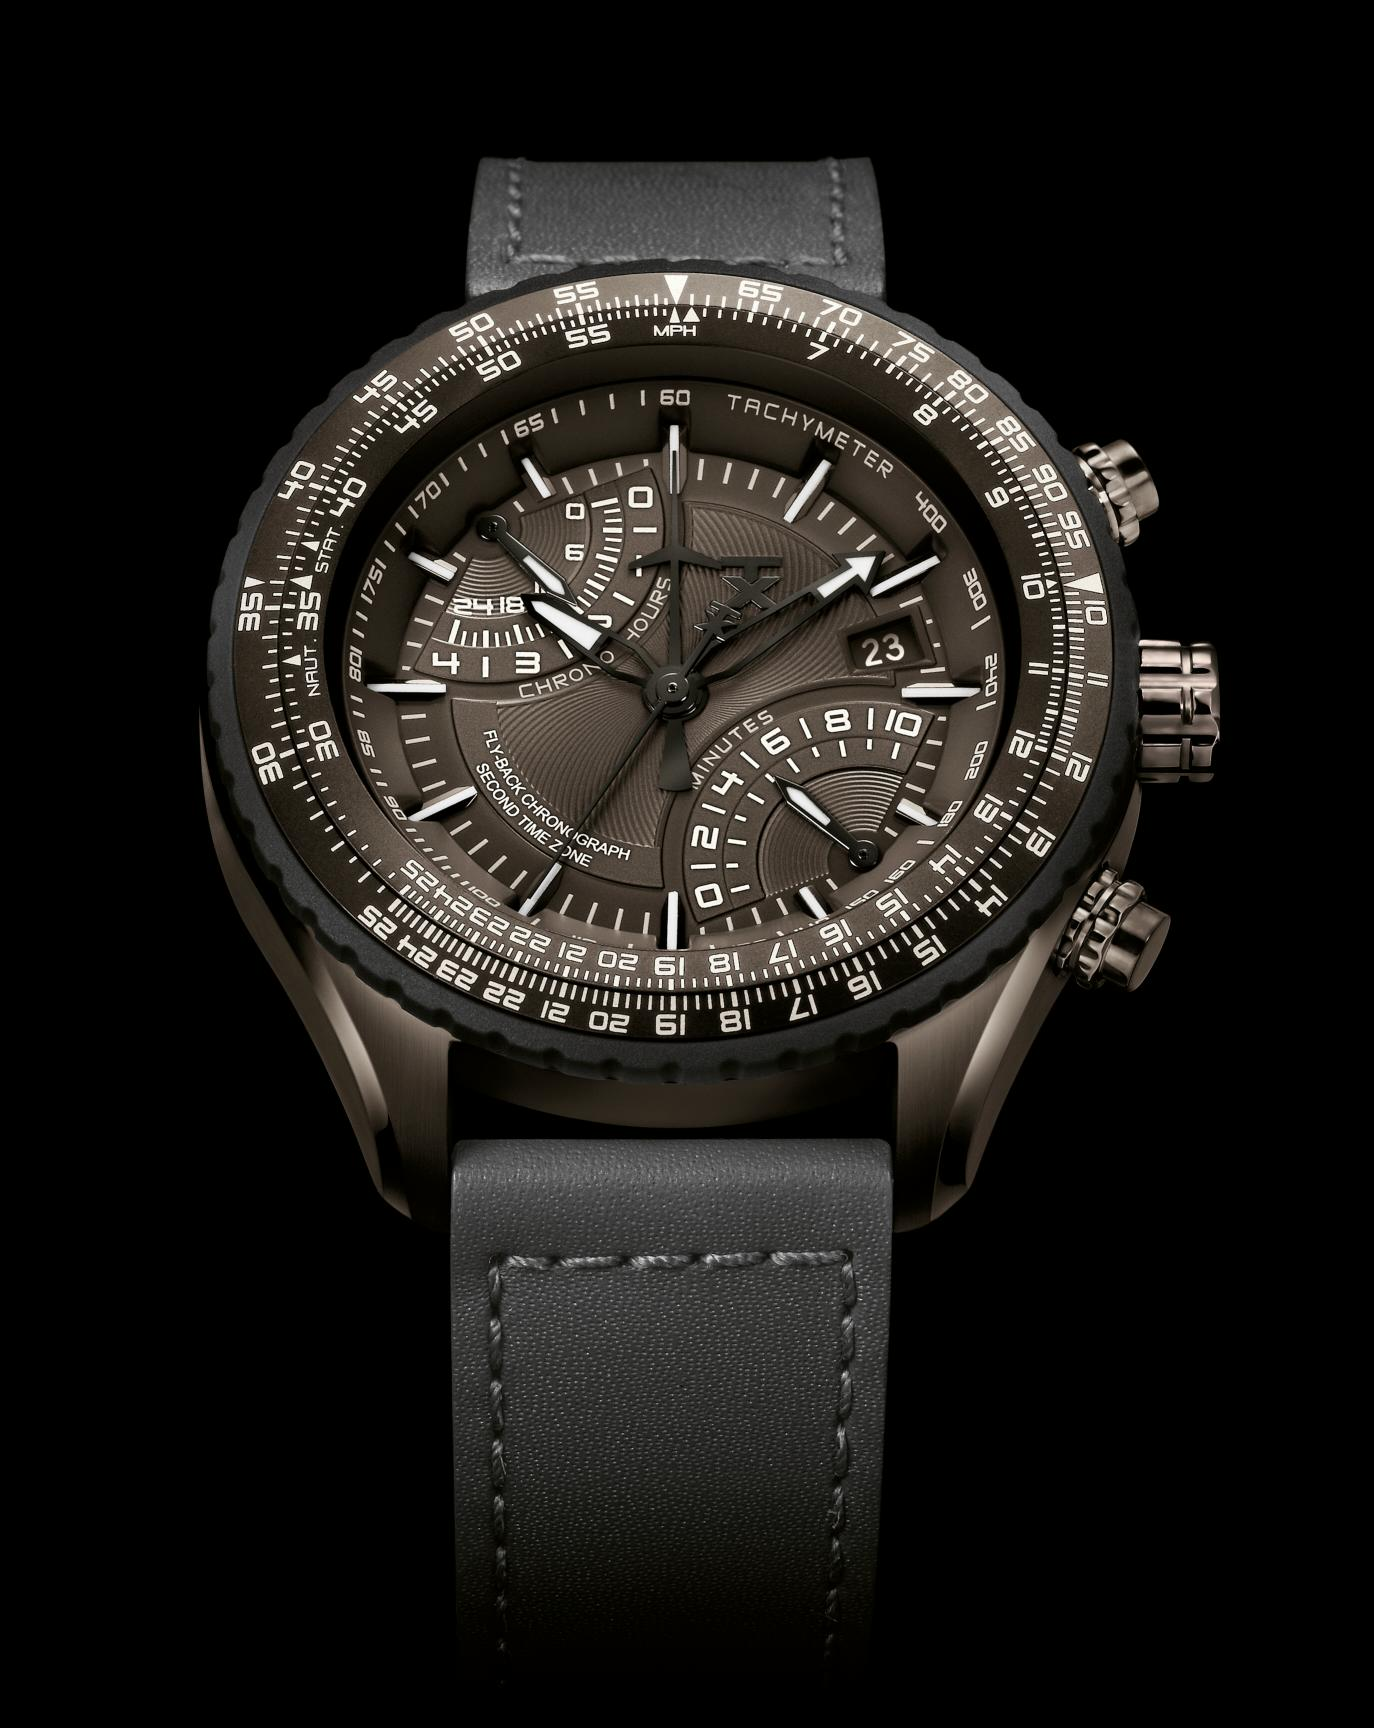 TX 610 Pilot Fly-back Chronograph